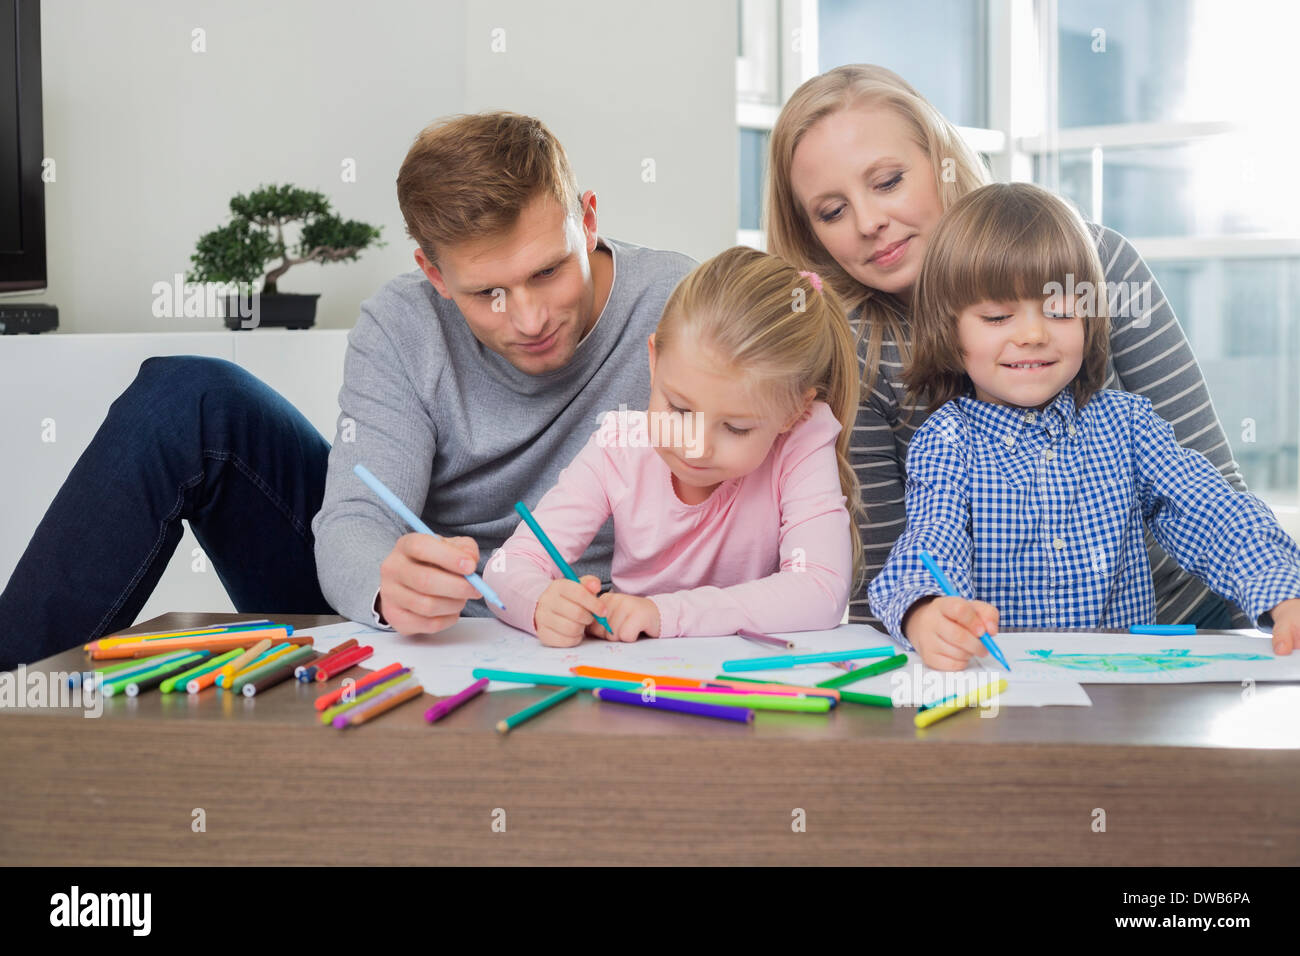 Mid adult parents with children drawing together at home Stock Photo